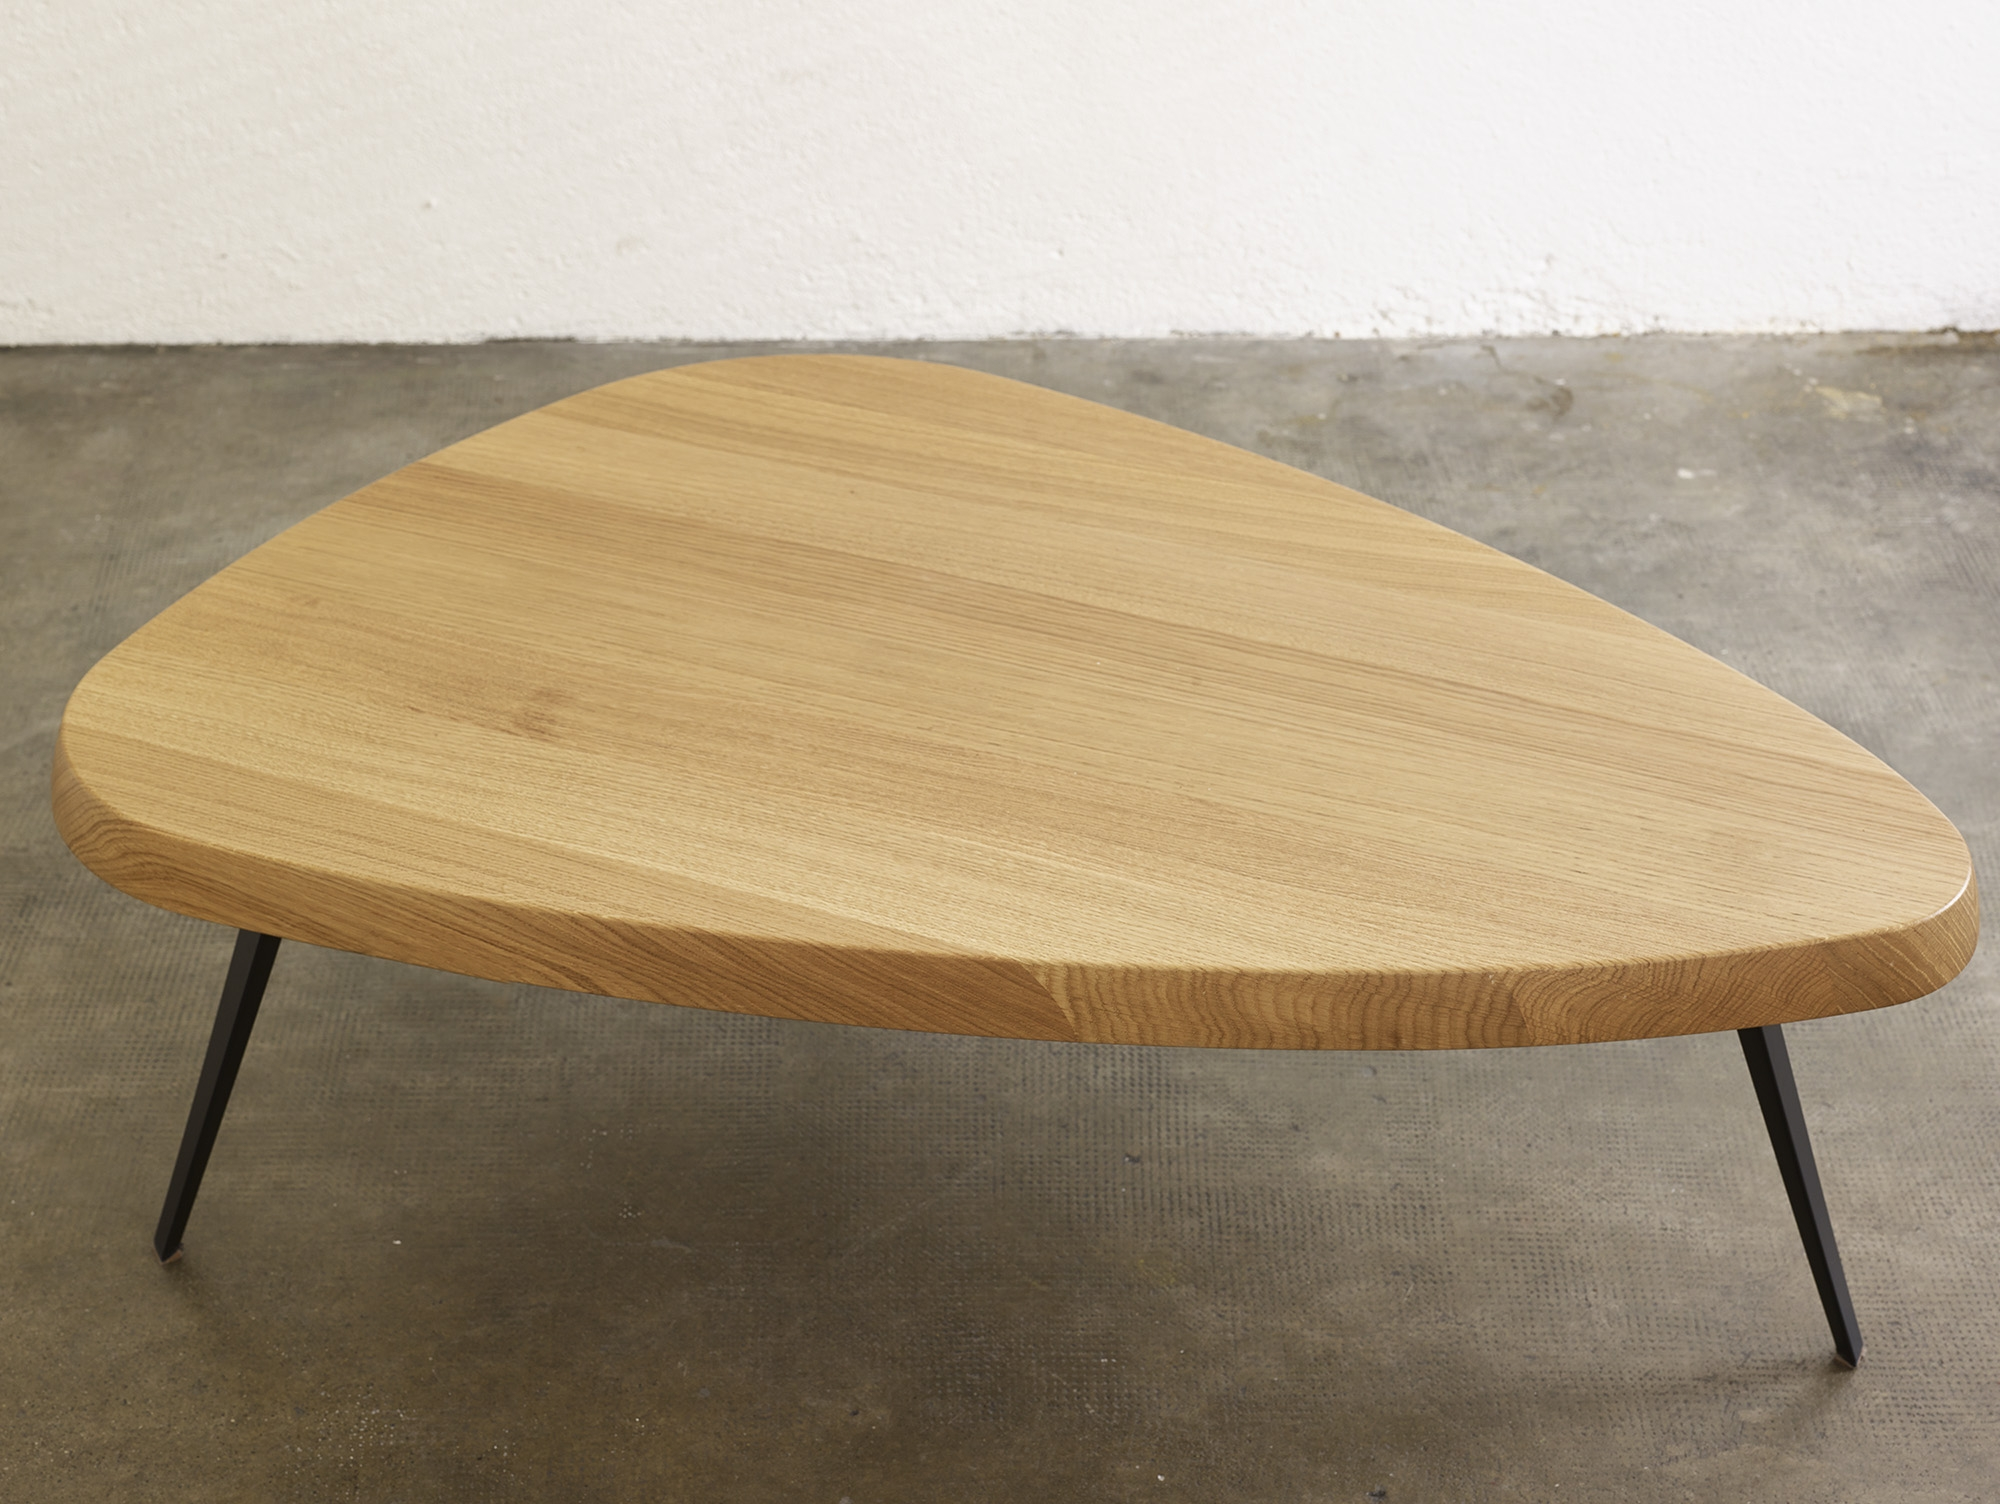 table-basse-527-de-charlotte-perriand-ed-cassina-image-06